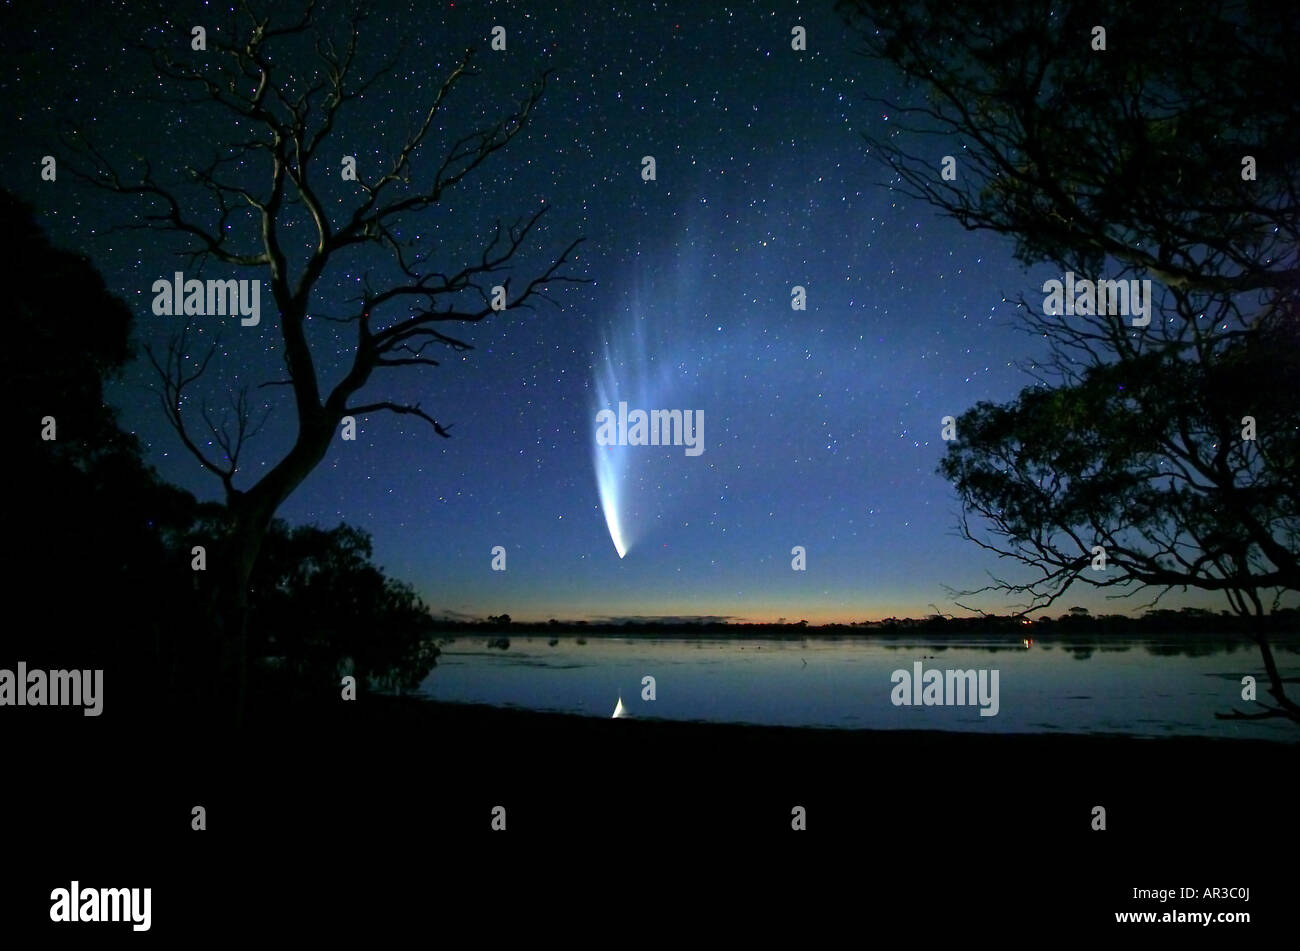 McNaughts Comet over Lower Eyre Peninsula South Australia 2145 hours on 22 Jan 2007 - Stock Image